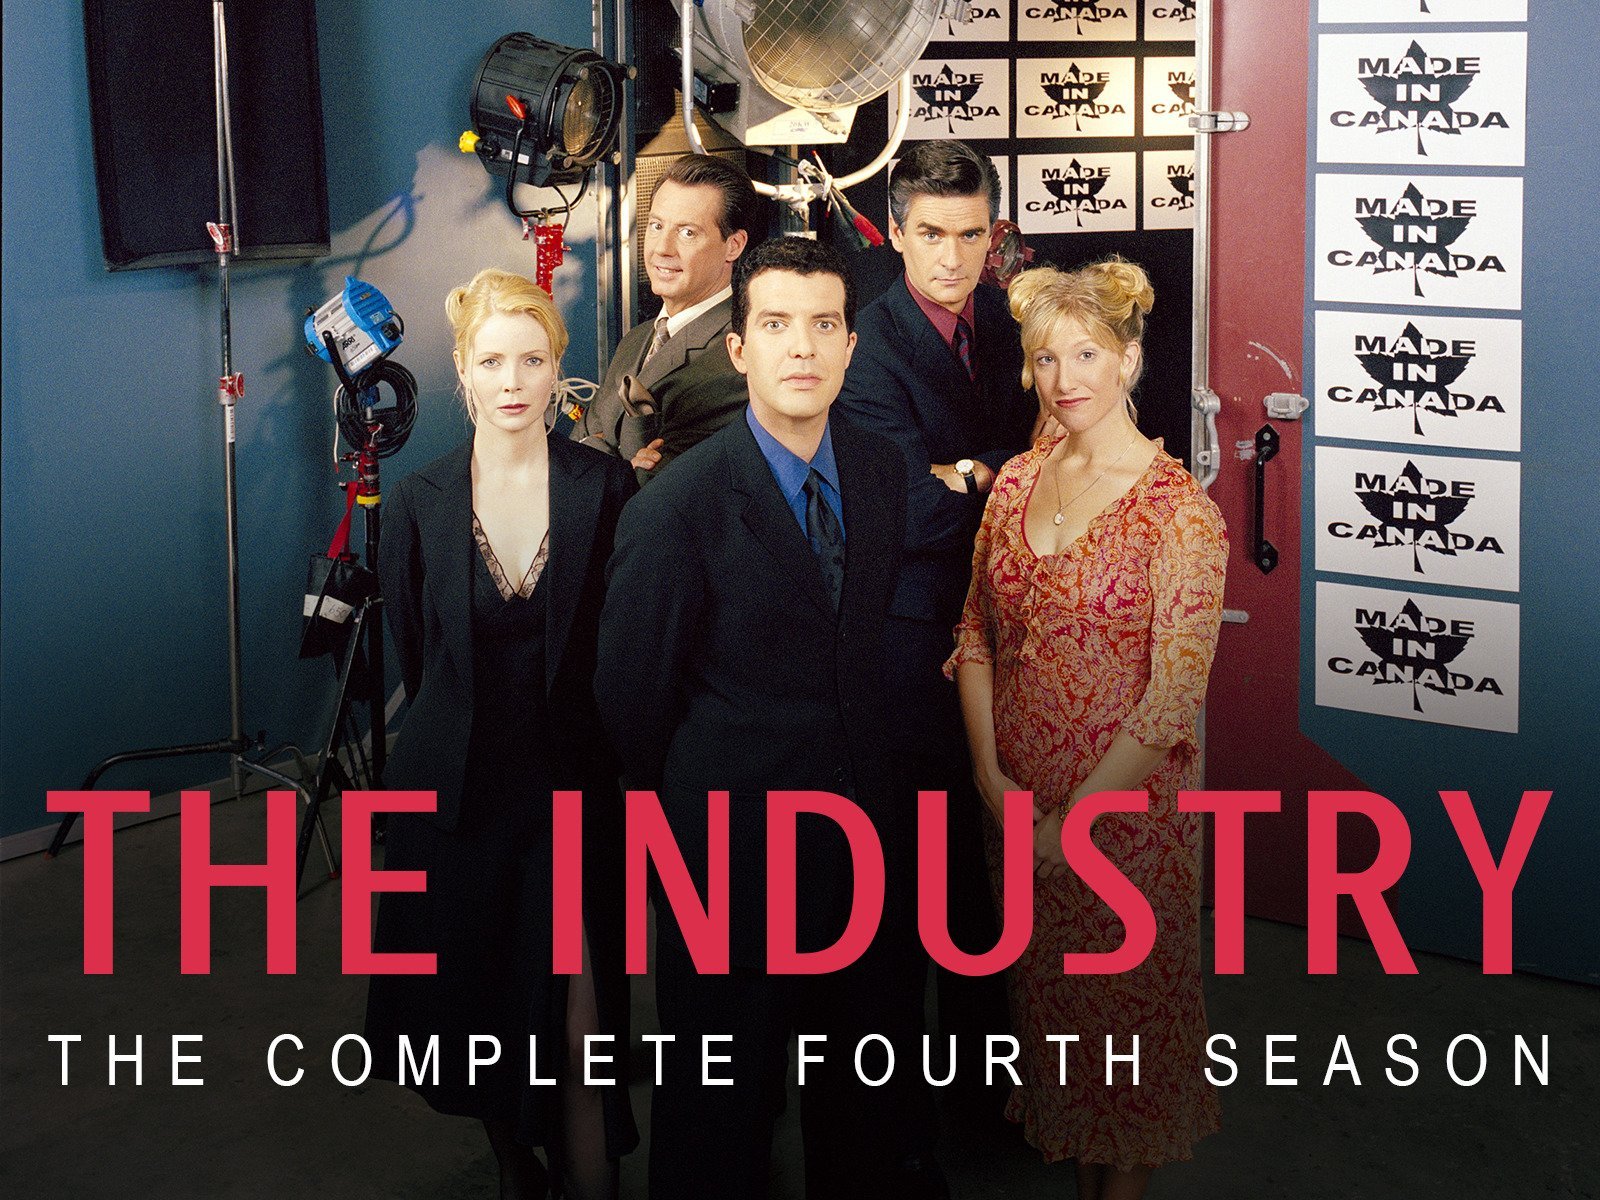 The Industry - Season 4